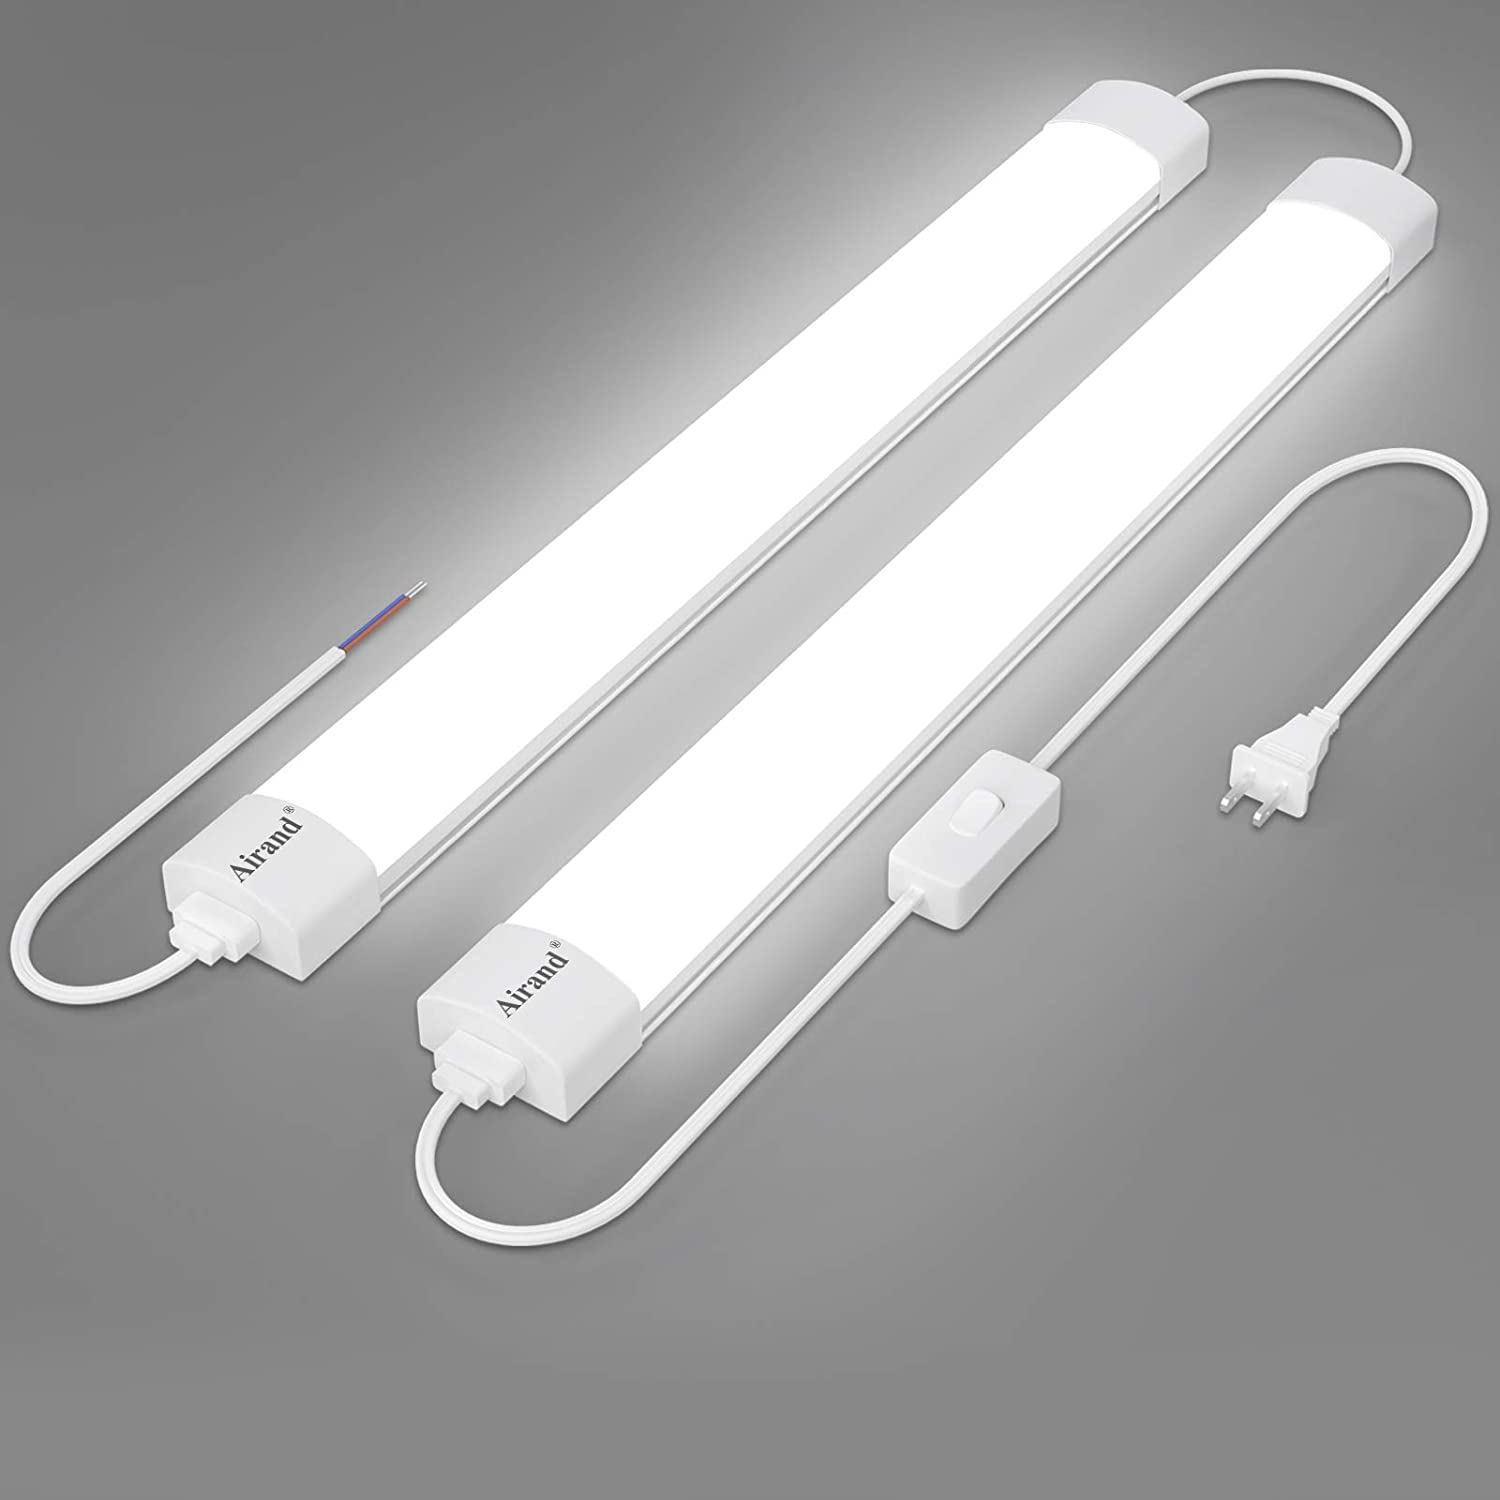 Utility LED Shop Light Fixture 2FT safety with OFFer 4FT Plug Linkable Airan